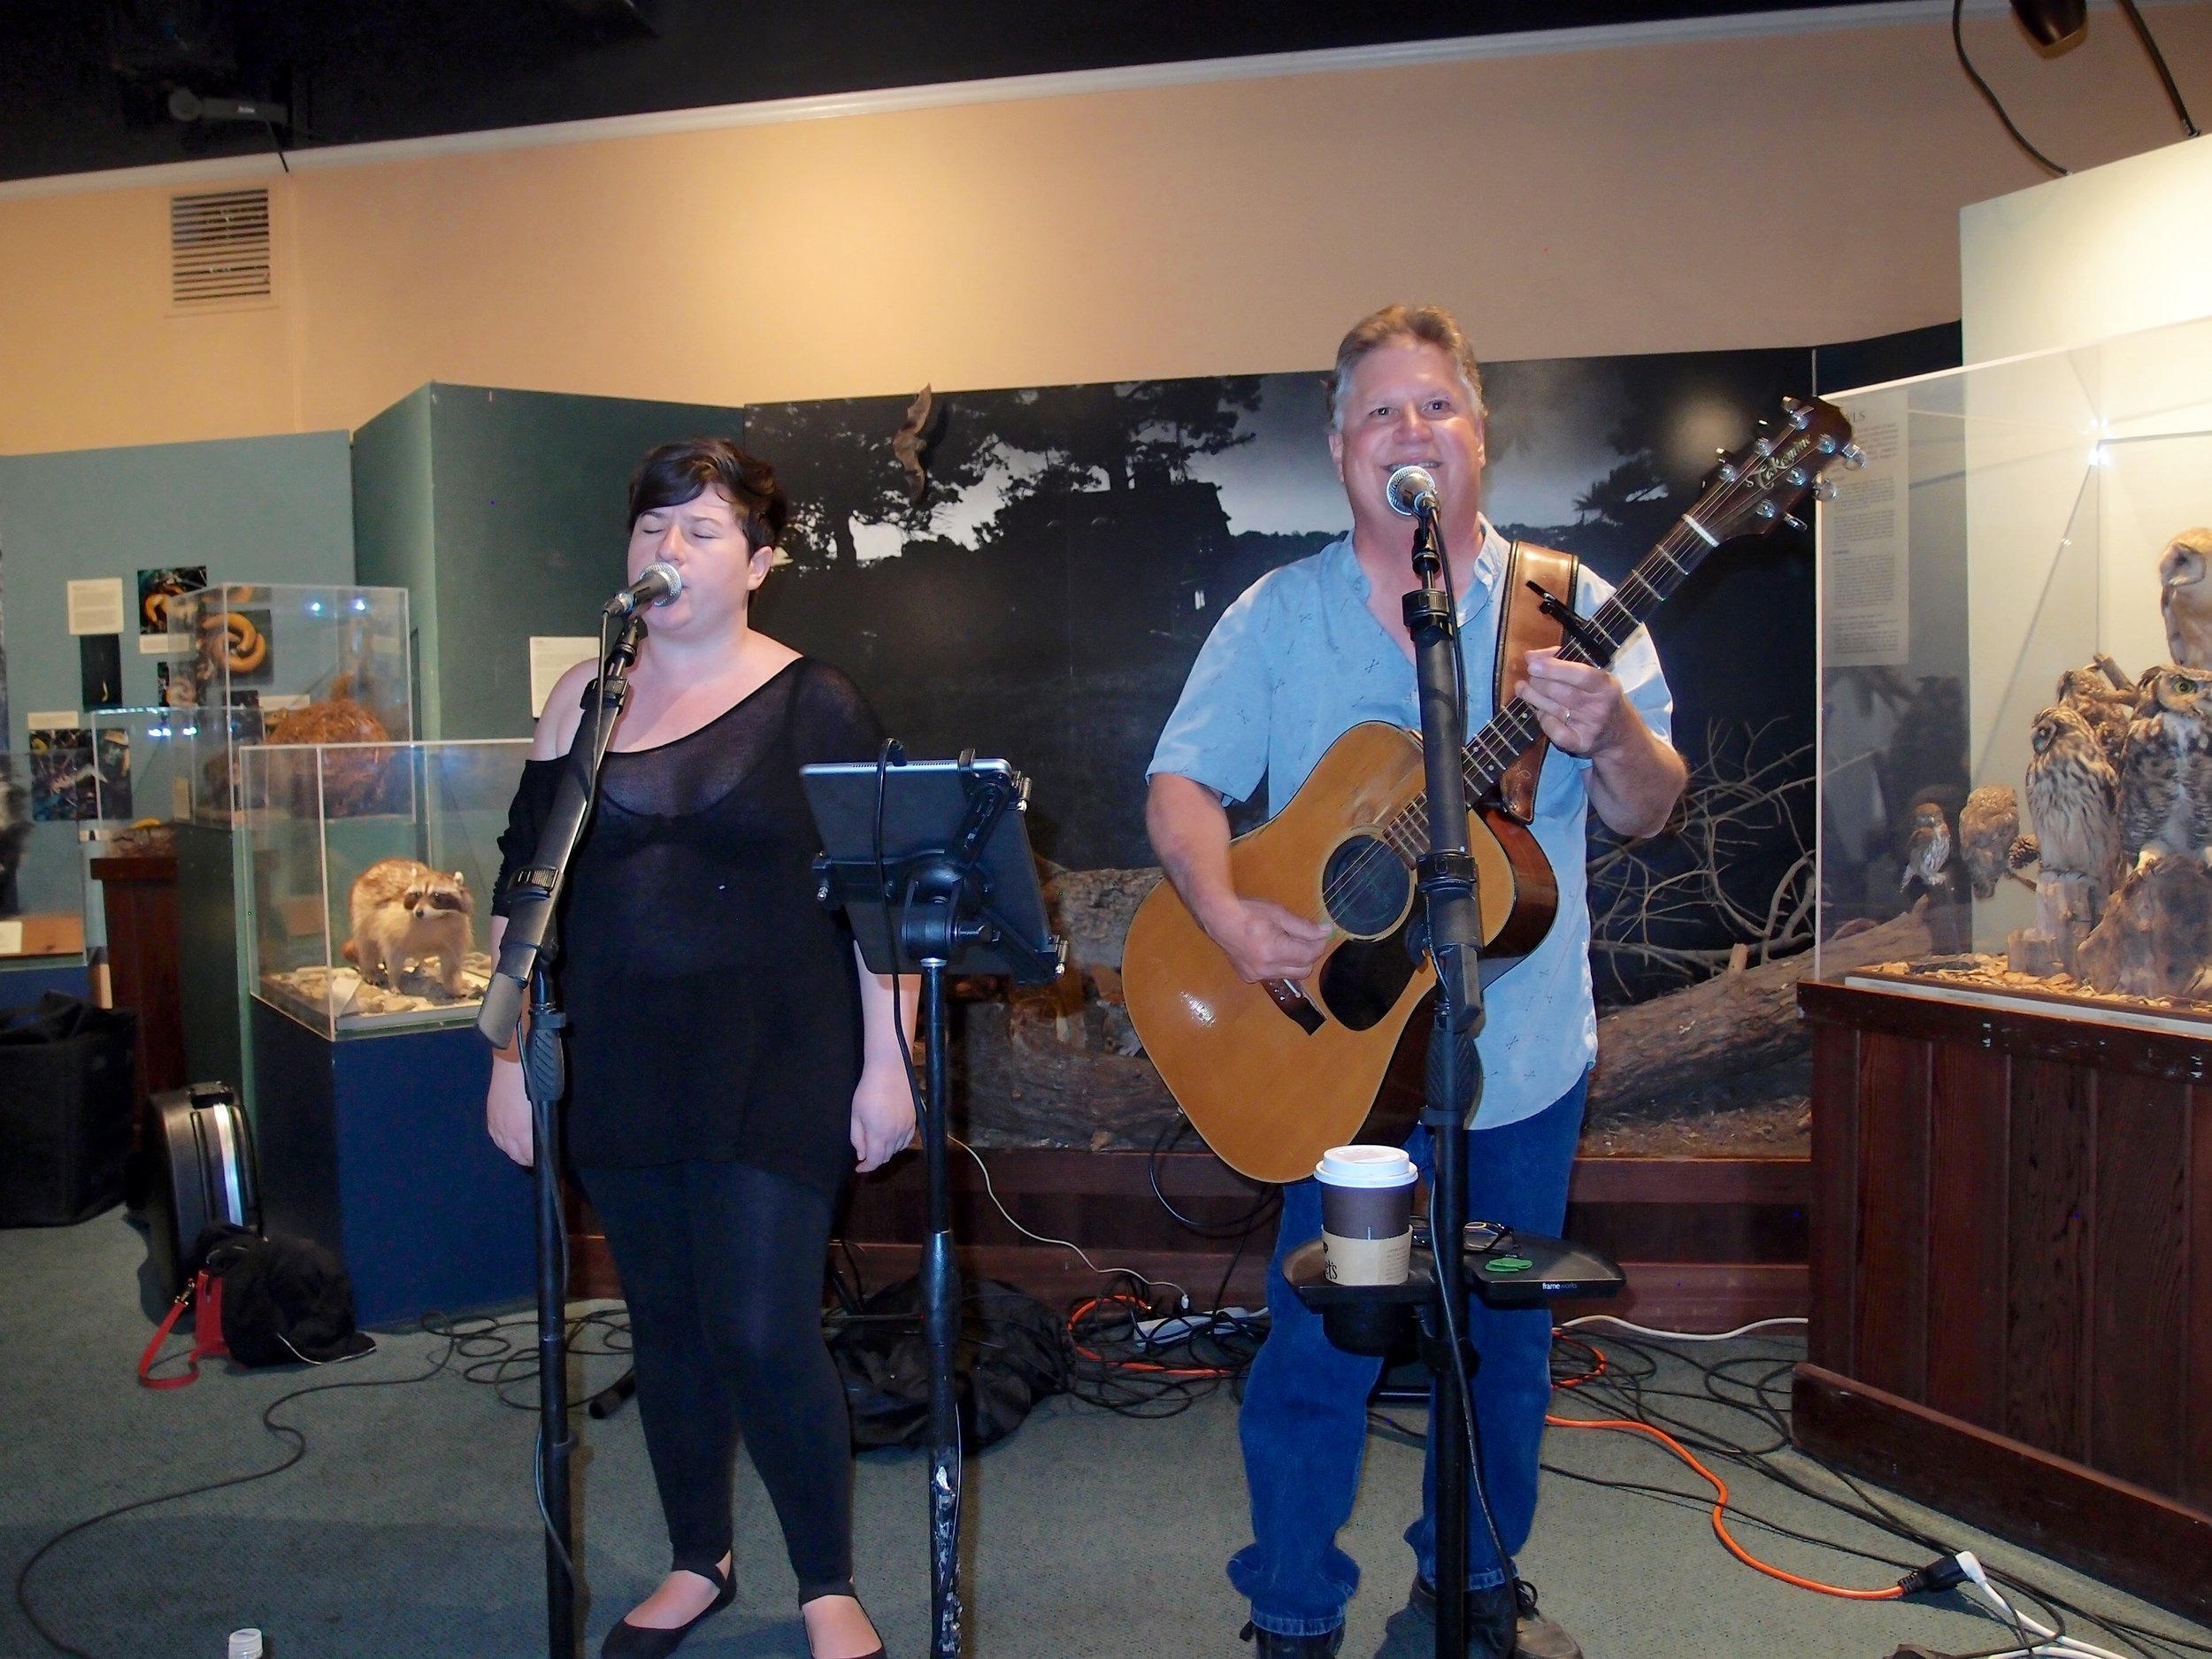 Steve Bennett and daughter April, together  Wild & Blue , riveted their audience with a soulful and heartfelt performance.